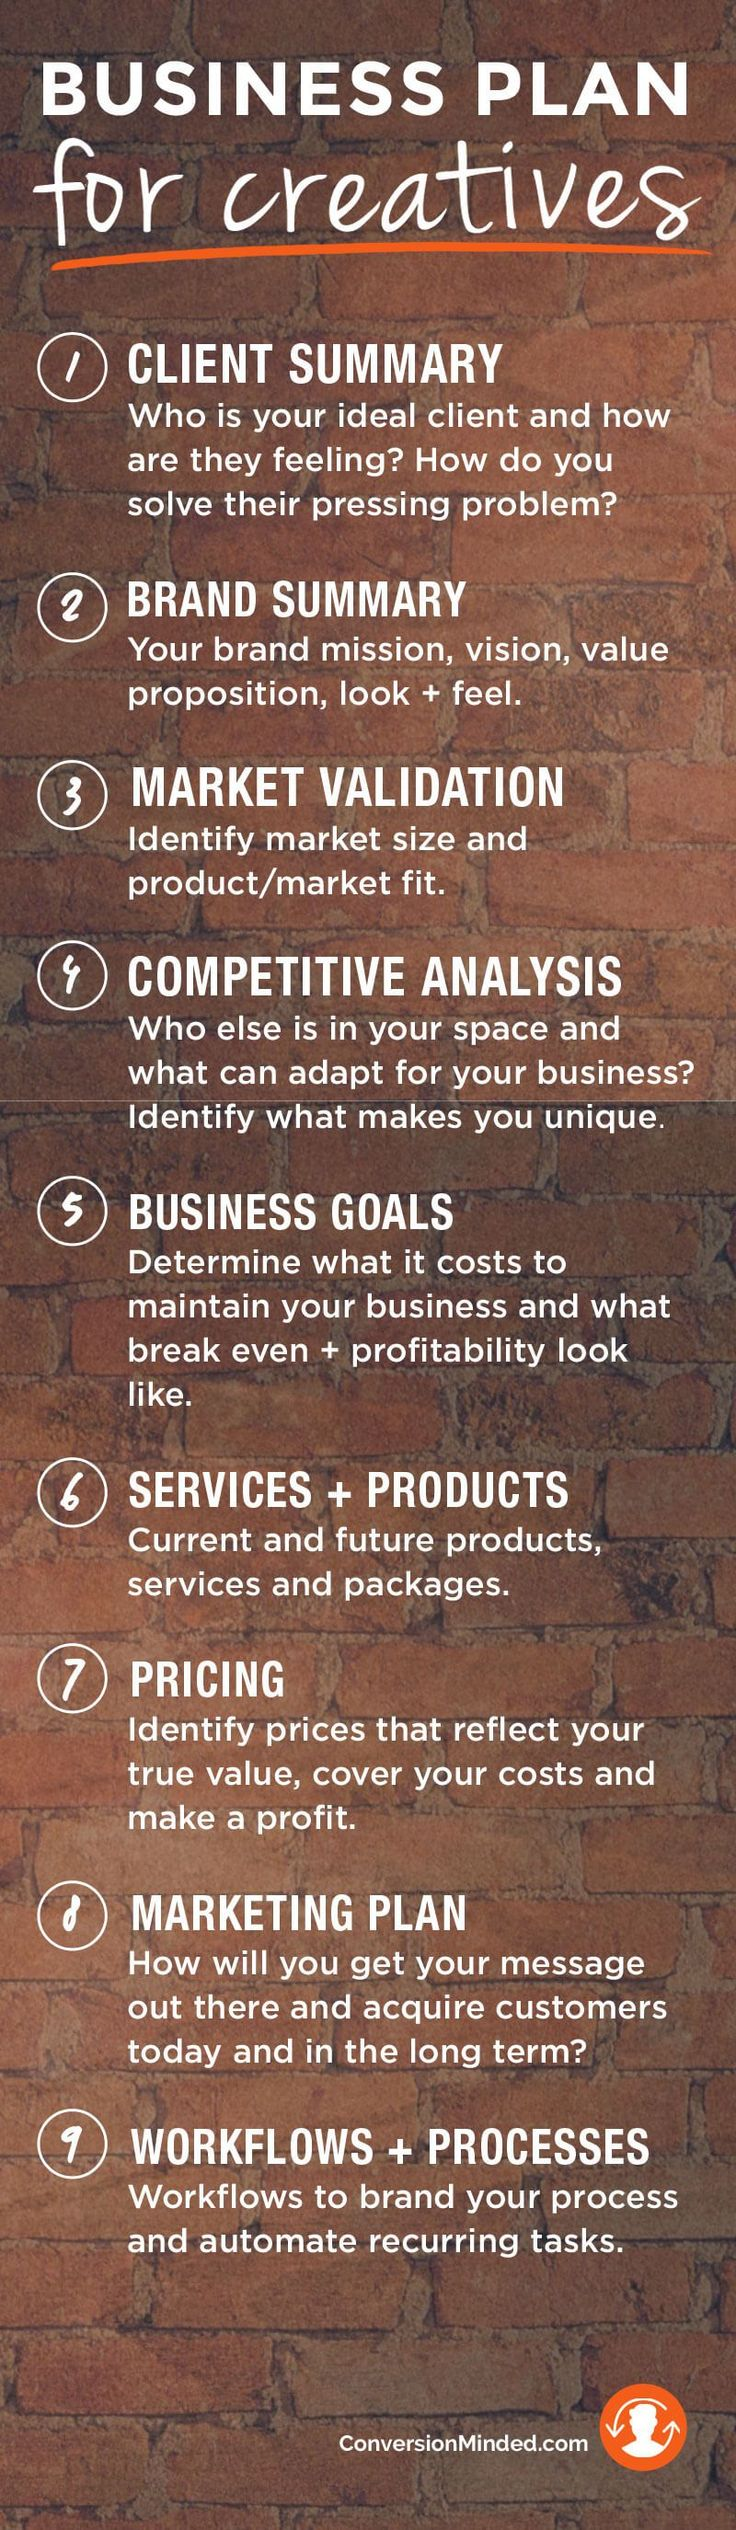 Business Plan Infographic for creatives to validate